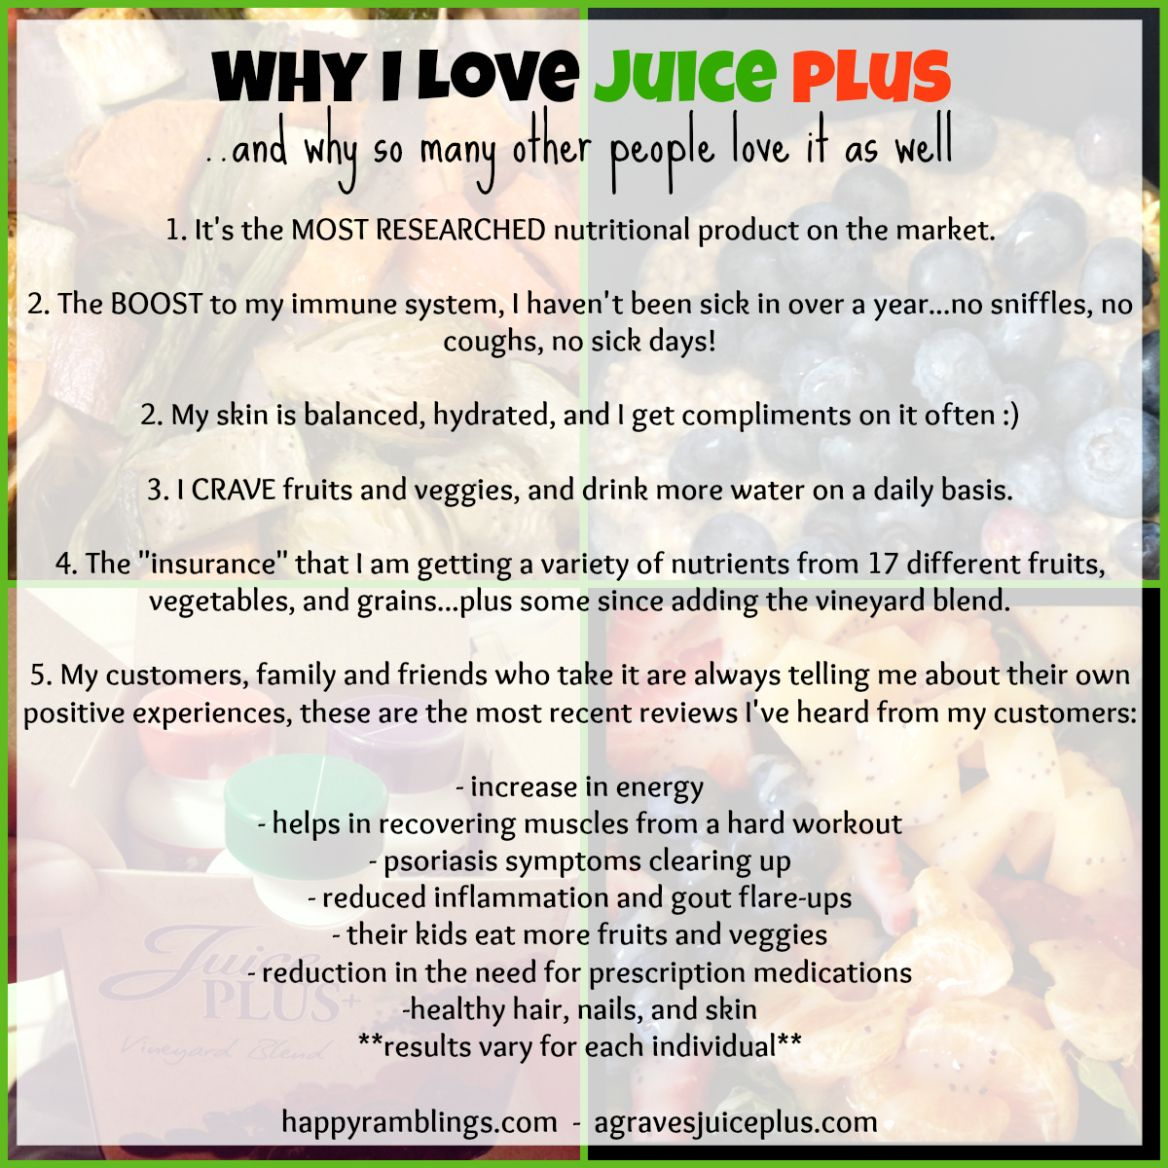 Why I Love Juice Plus Want To Start A New Healthy Lifestyle Then